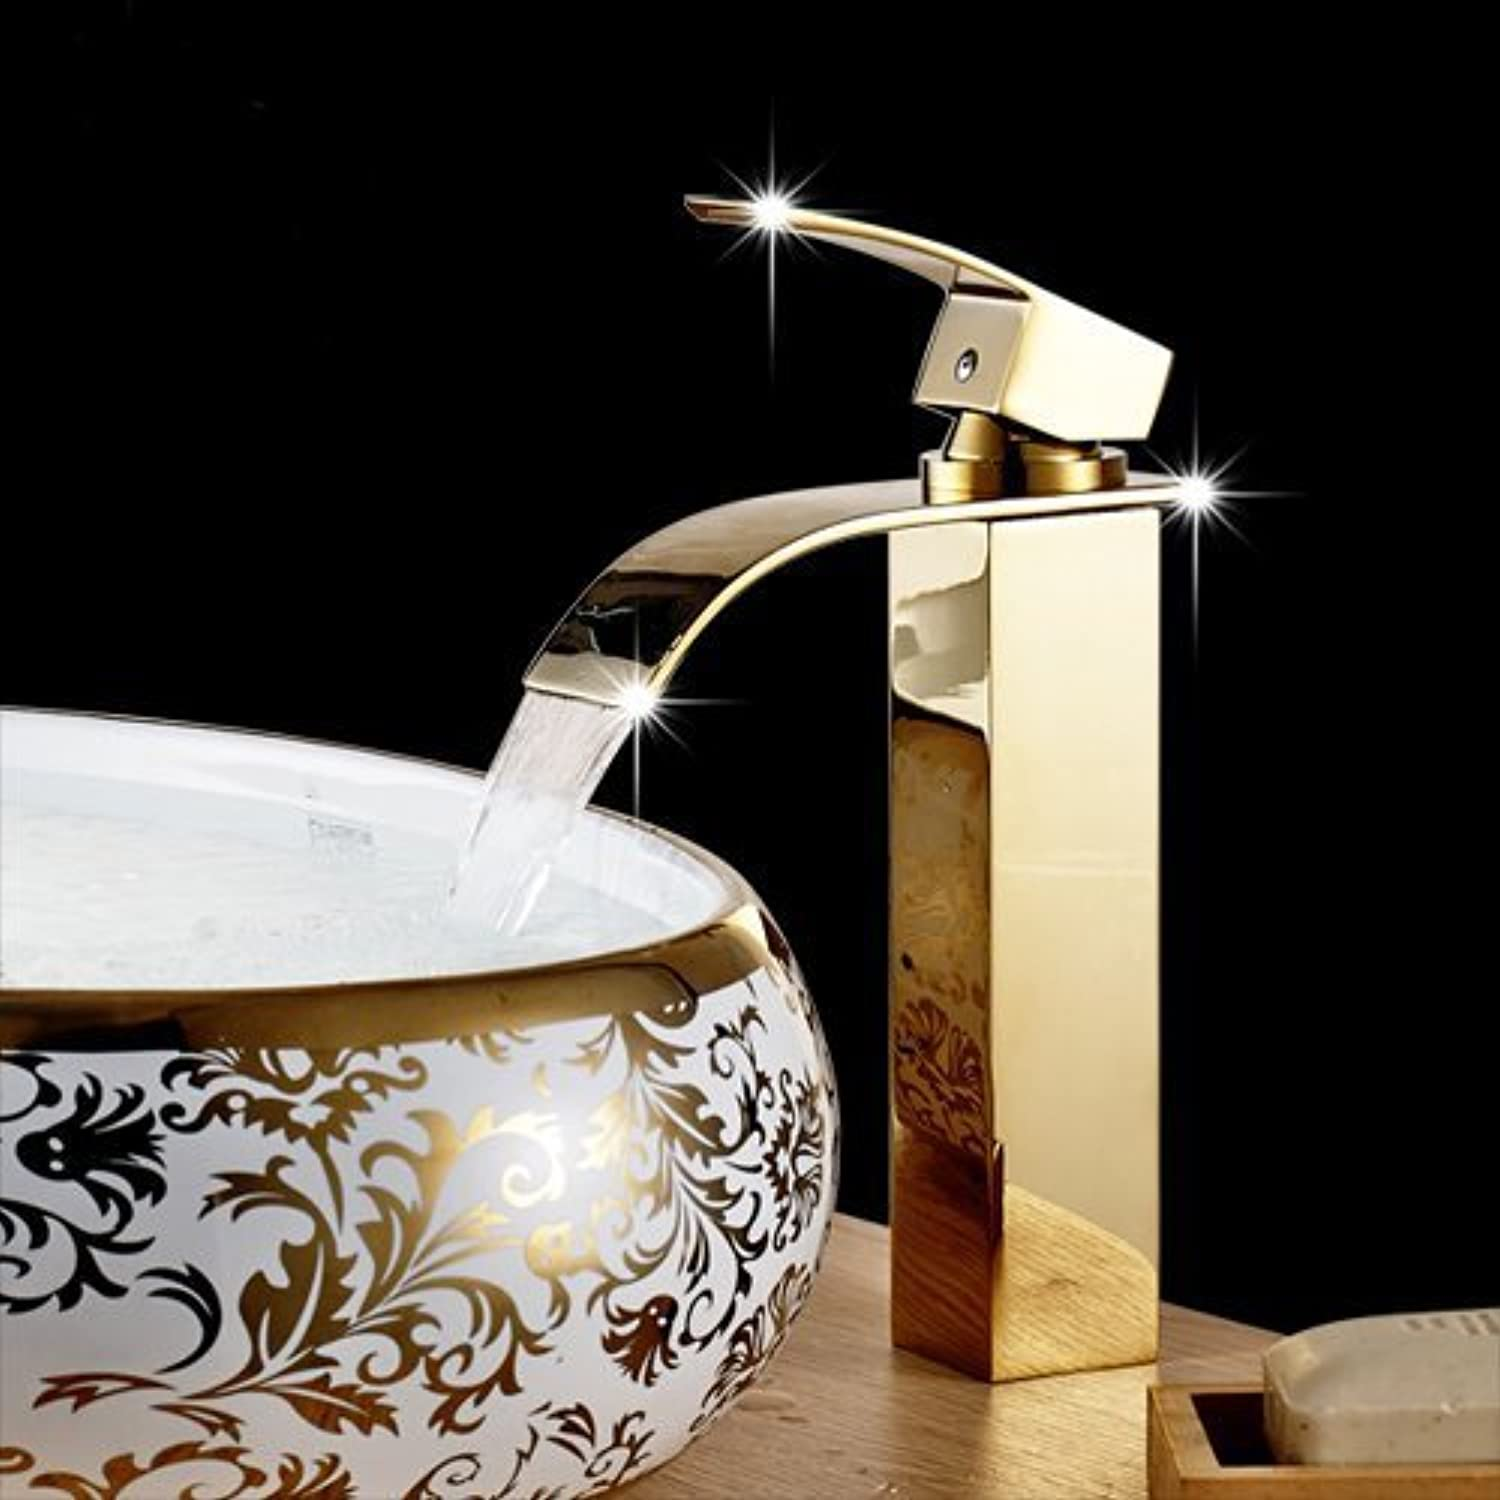 U-Enjoy High Waterfall Faucet Top Quality Hot and Cold Device Faucet Polished golden Chrome Bathroom Sink Mixer Tap Waterfall Tap (White)